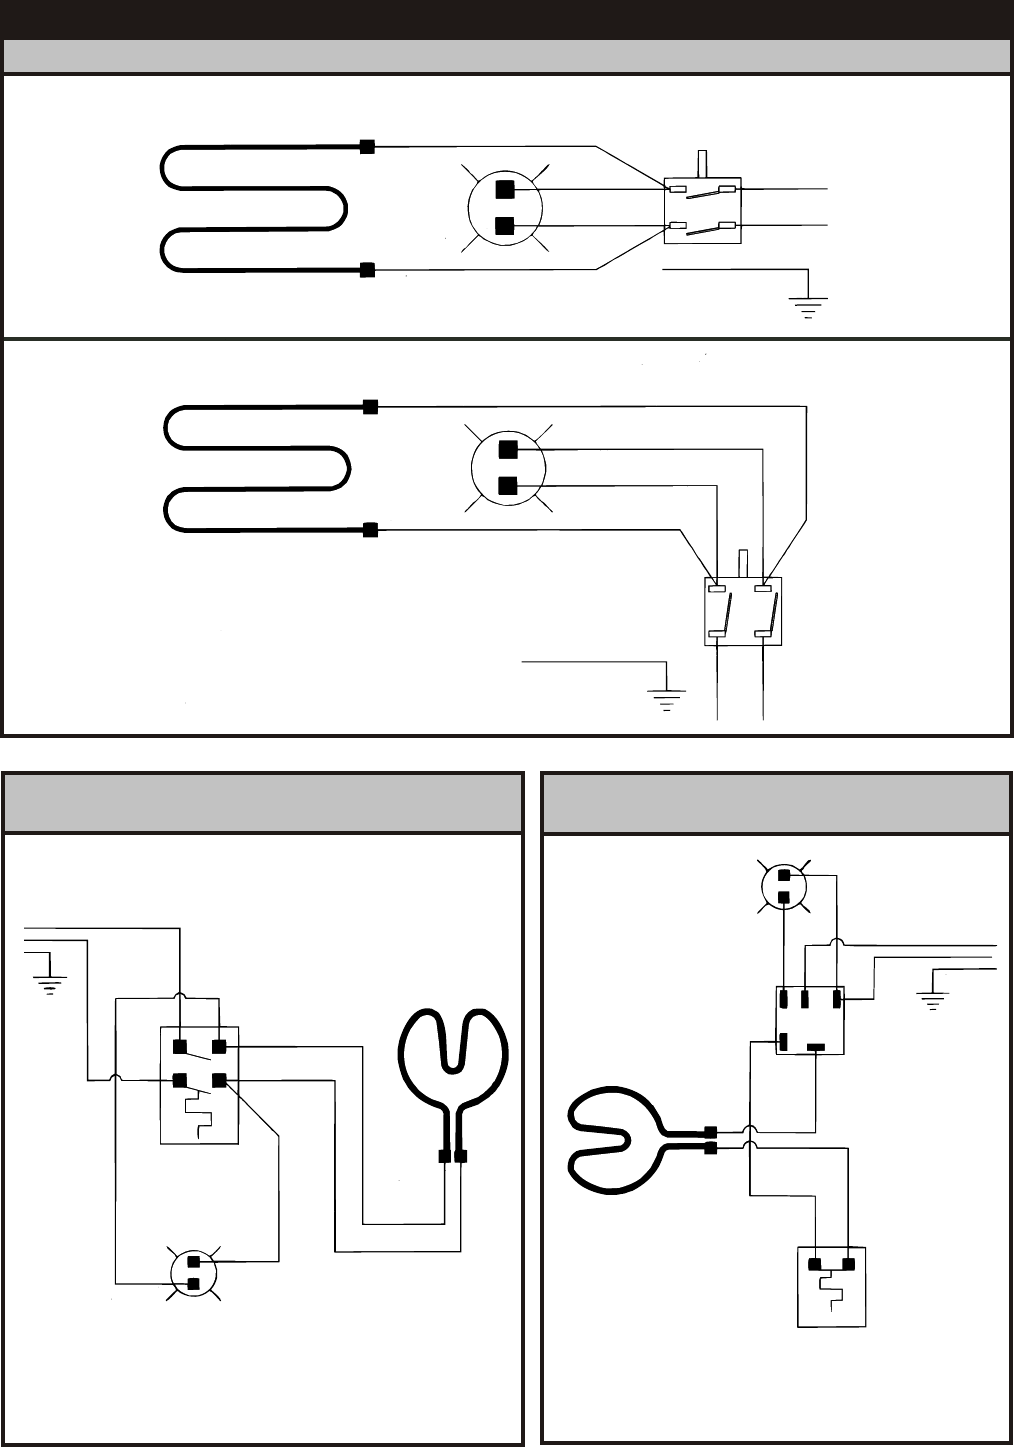 ca7b3e15 4662 41e6 adbd 34fa5e64b3e9 bg8 page 8 of apw wyott food warmer hfw 1 user guide manualsonline com robertshaw infinite switch wiring diagram at bayanpartner.co